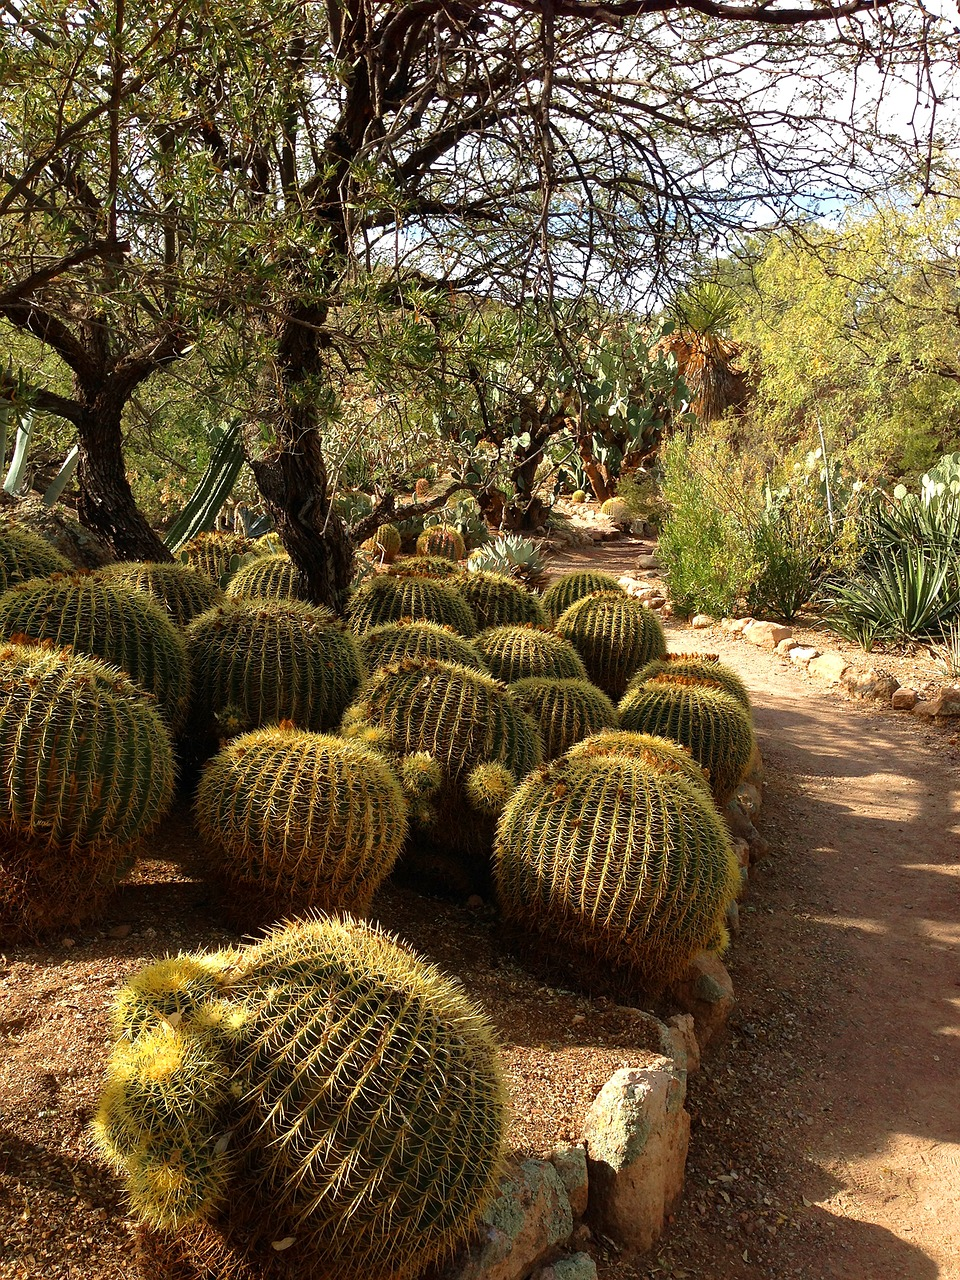 BARREL CACTI GARDEN PATH BARREL CACTI CACTUS FREE PHOTO FROM